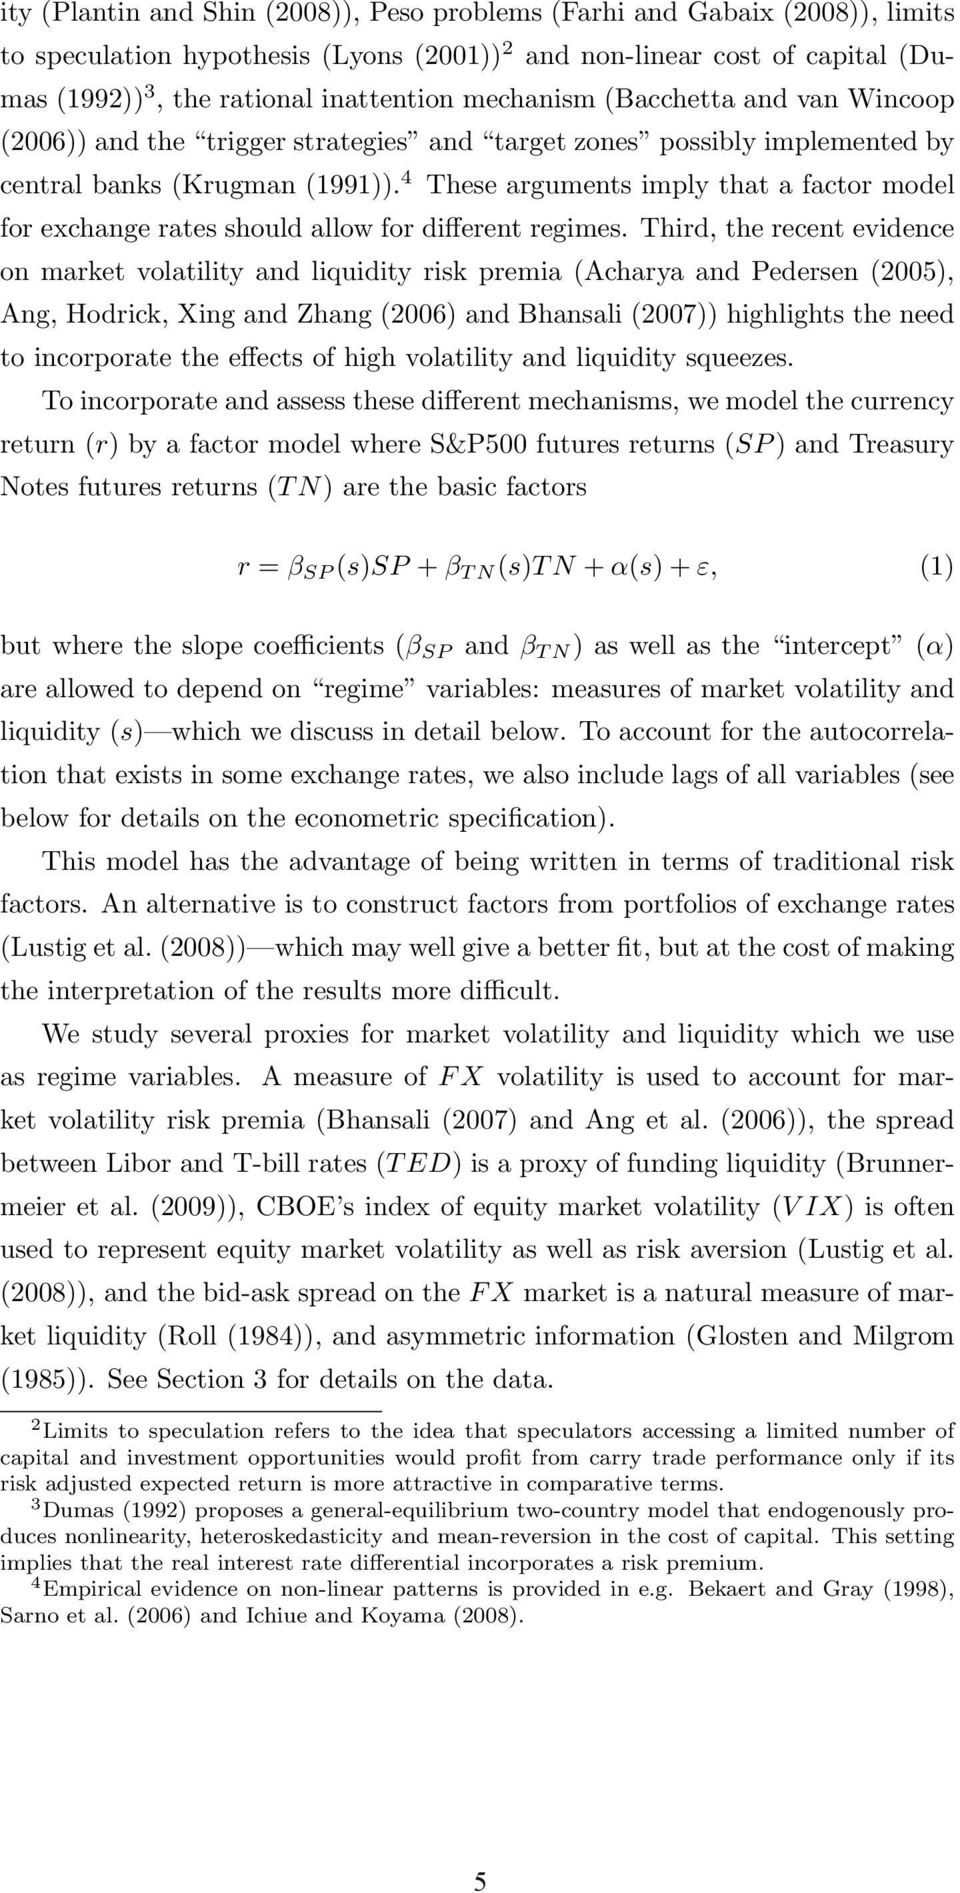 4 These arguments imply that a factor model for exchange rates should allow for different regimes.